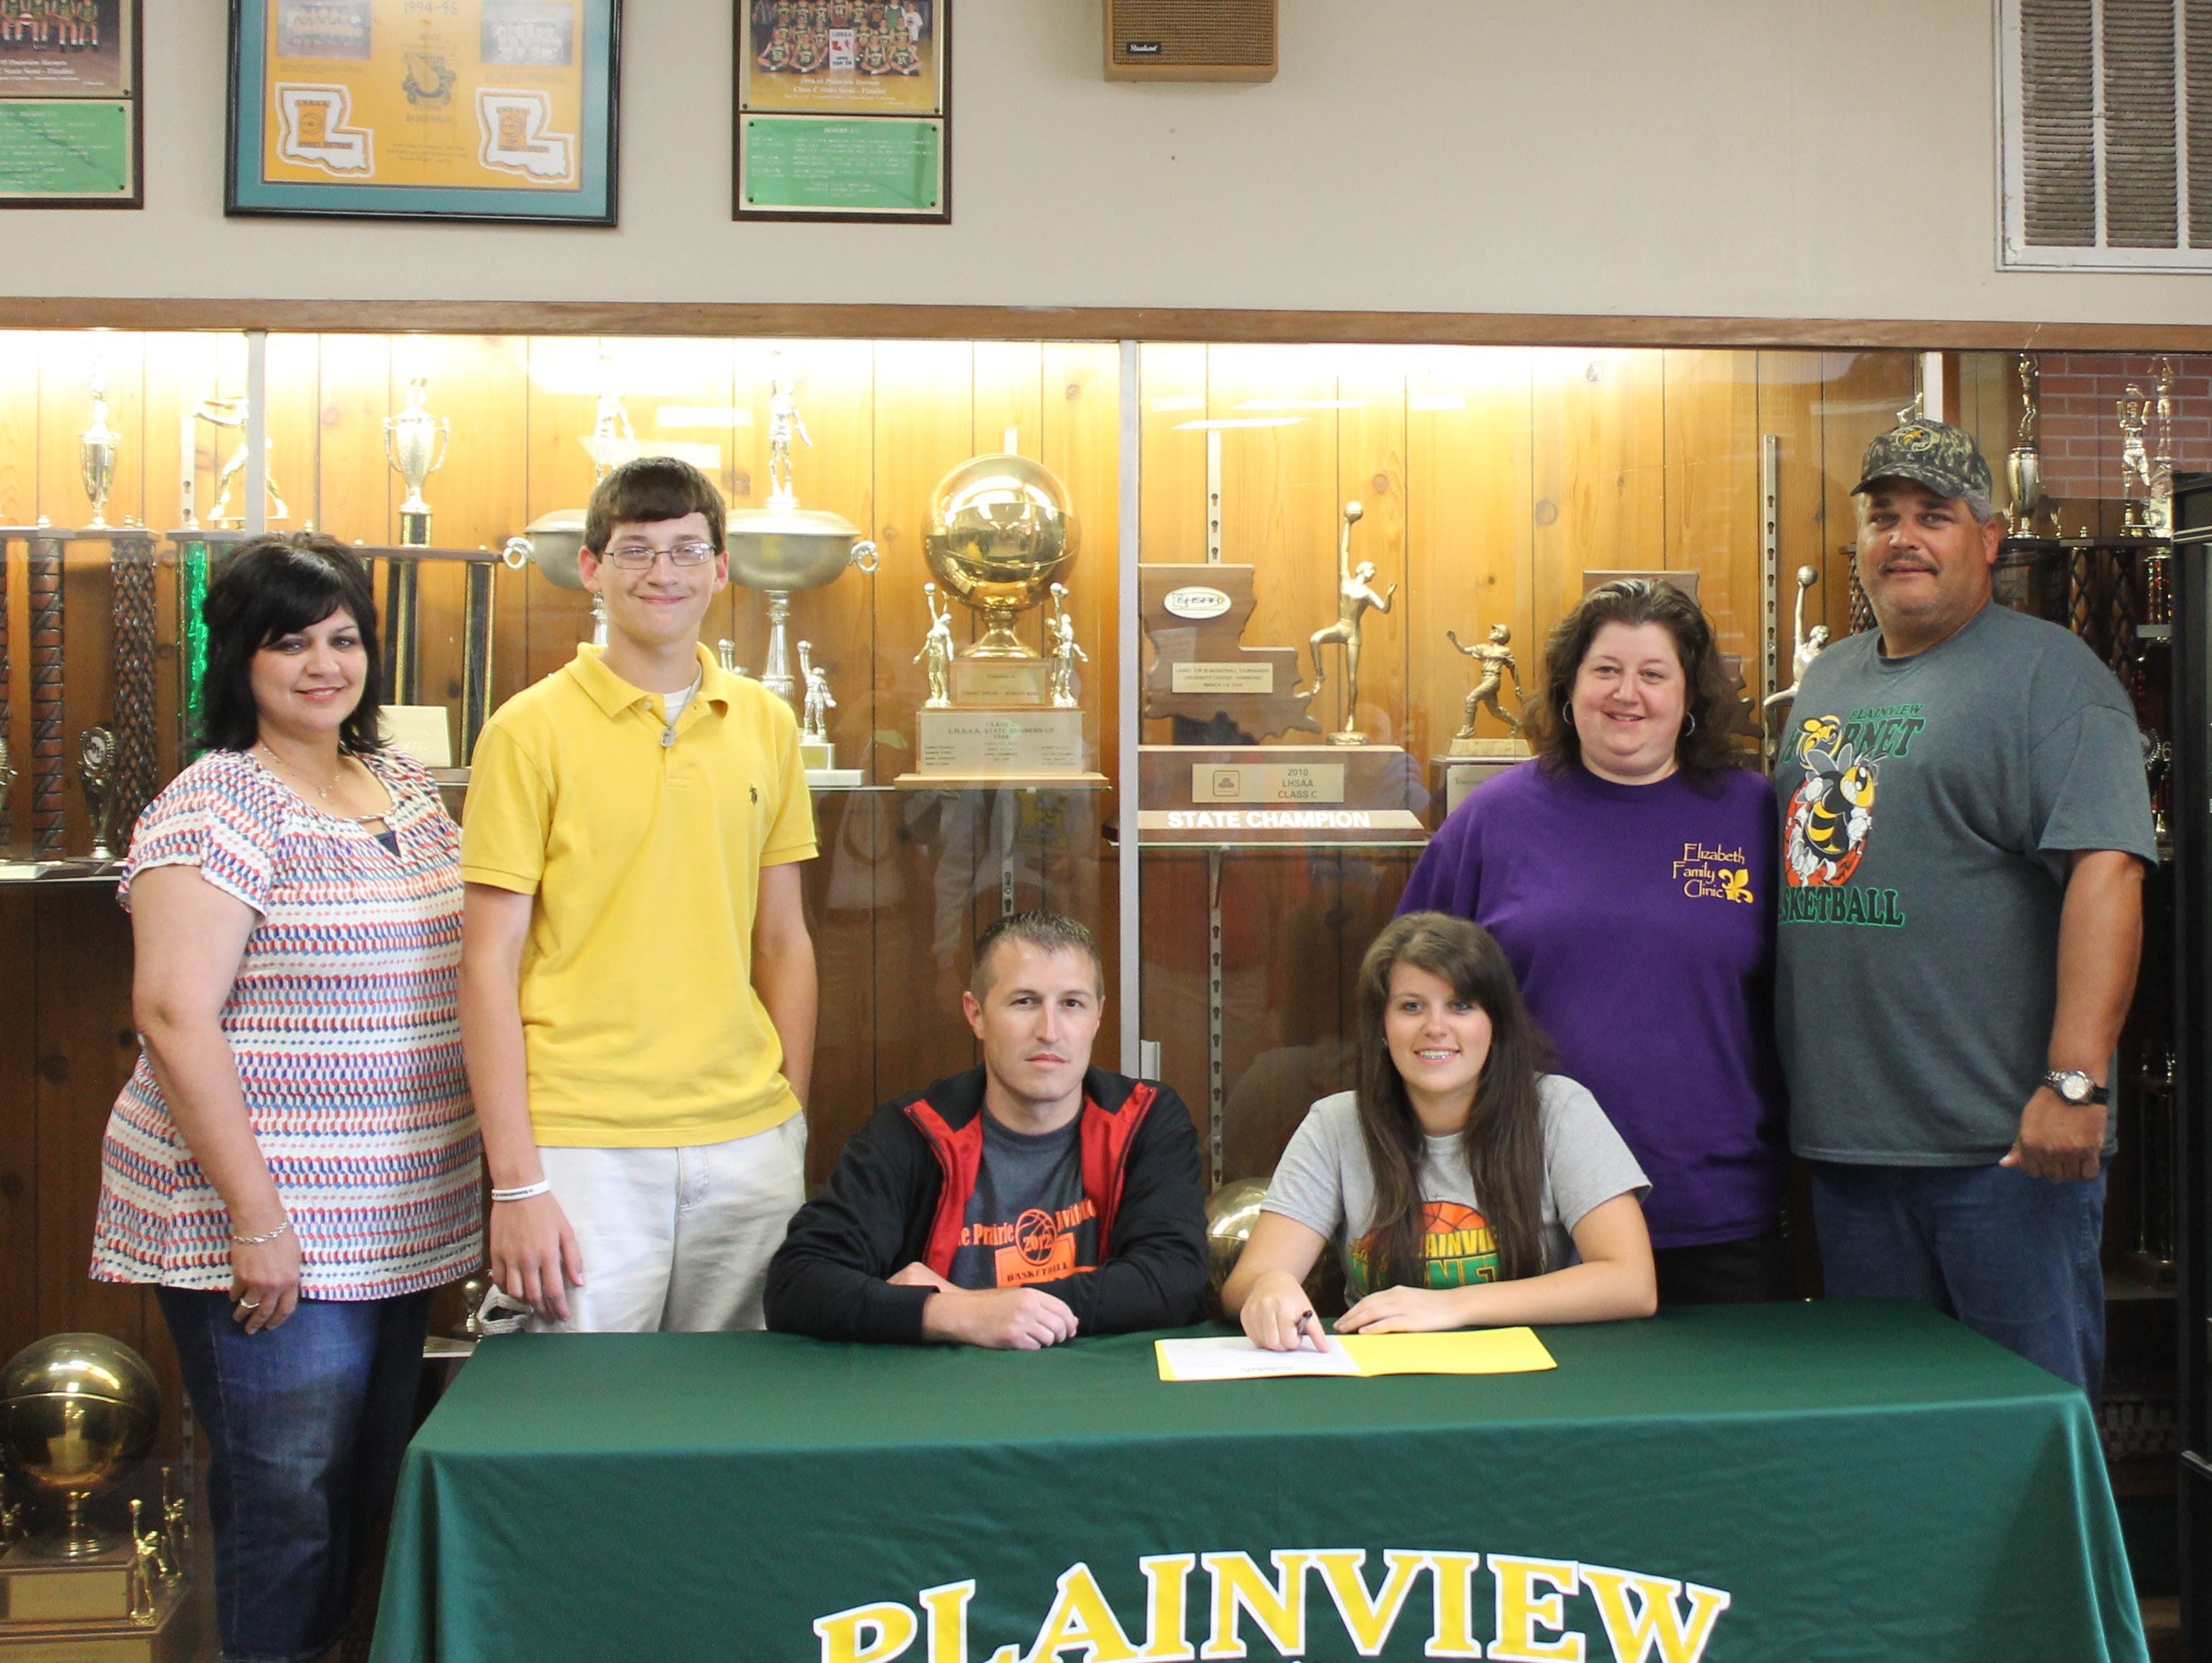 Plainview senior Kelli Crager (seated, right) signs with LSUA and is joined by (from left): Plainview principal Sonia Rasmussen; her brother, Michael; Plainview coach Justin Miller and her parents Michelle and Mike.